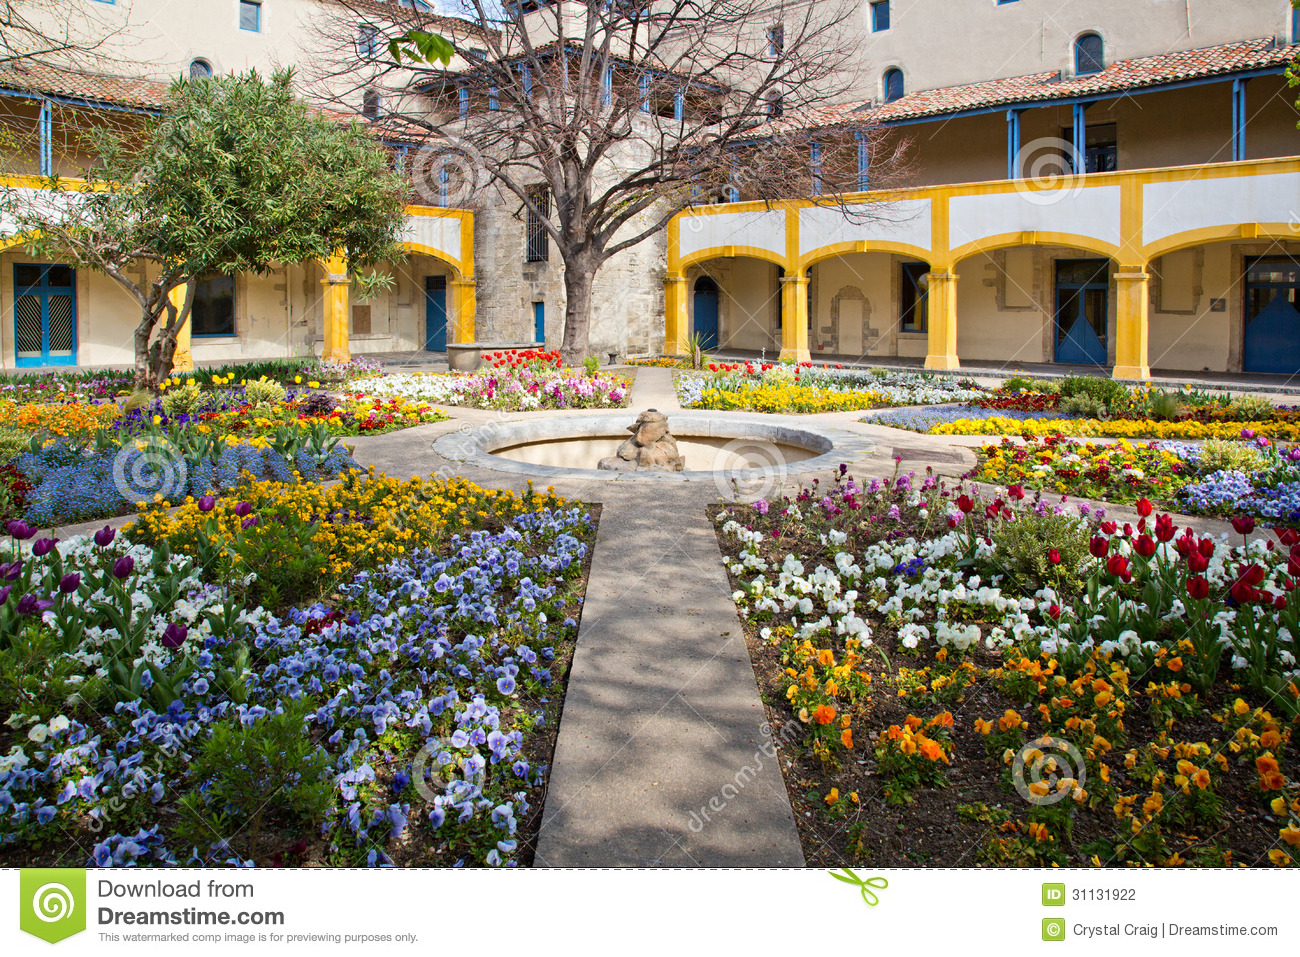 Awesome Garden Of The Hospital Arles France Stock Photo   Image Of Archways, Color:  31131922